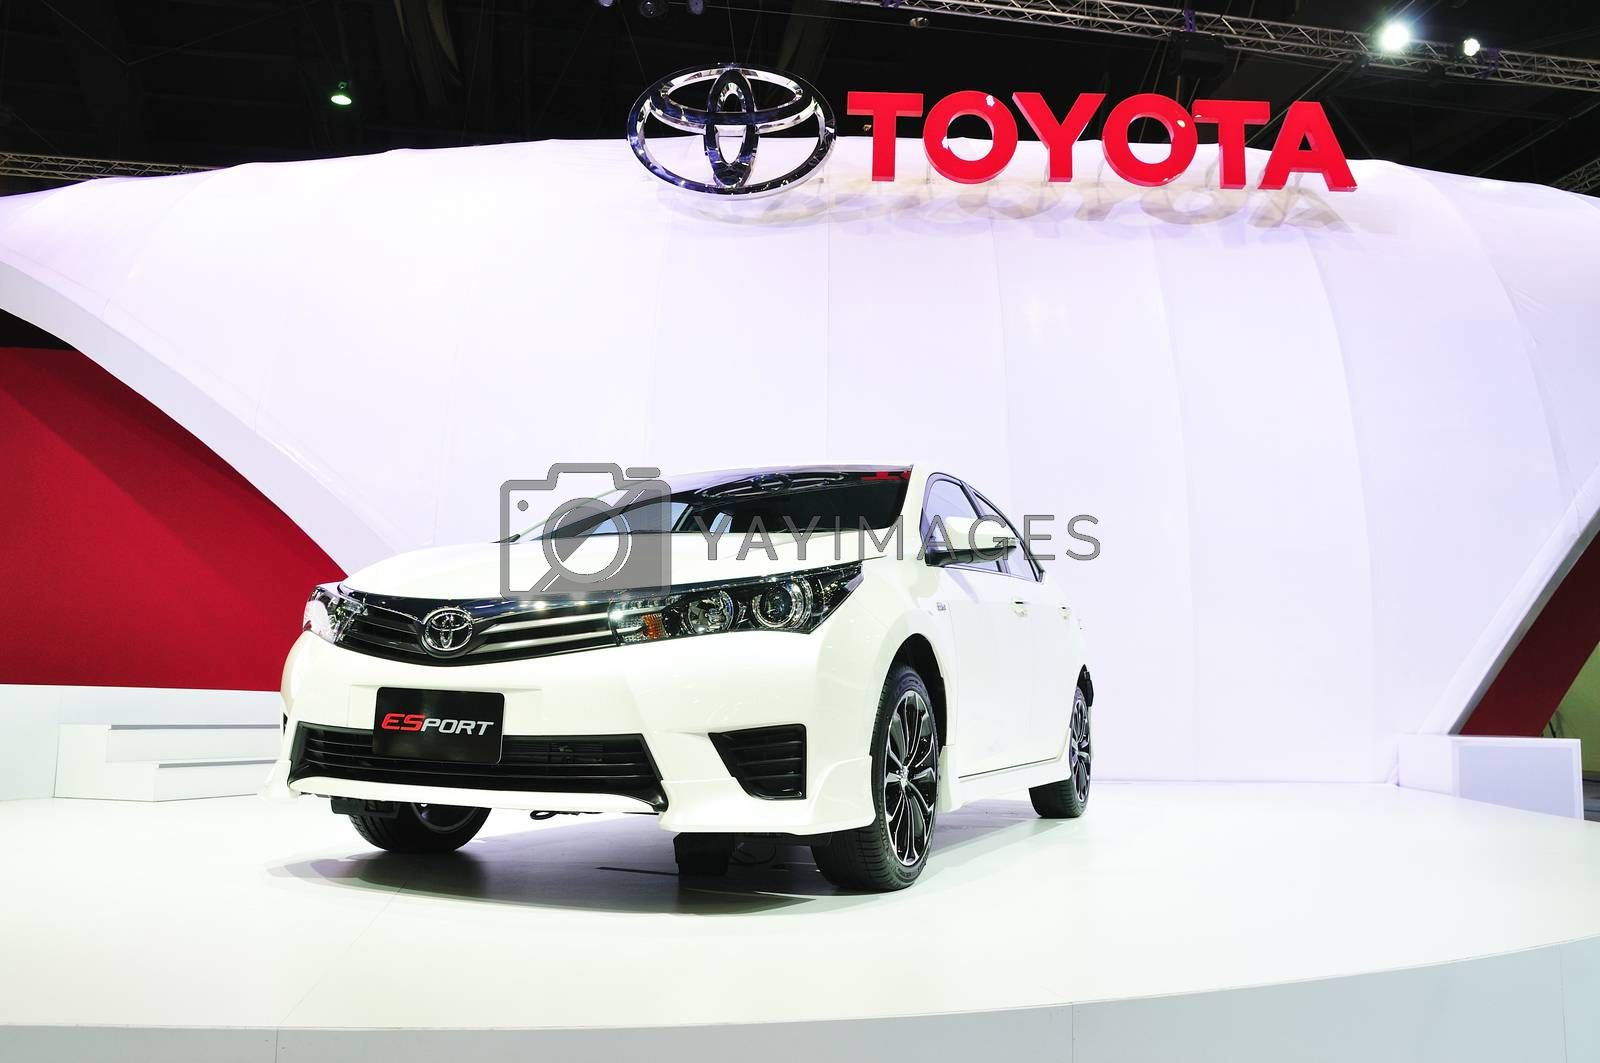 NONTHABURI - MARCH 25: New ToyoTa Altis E-sport on display at Th by thampapon